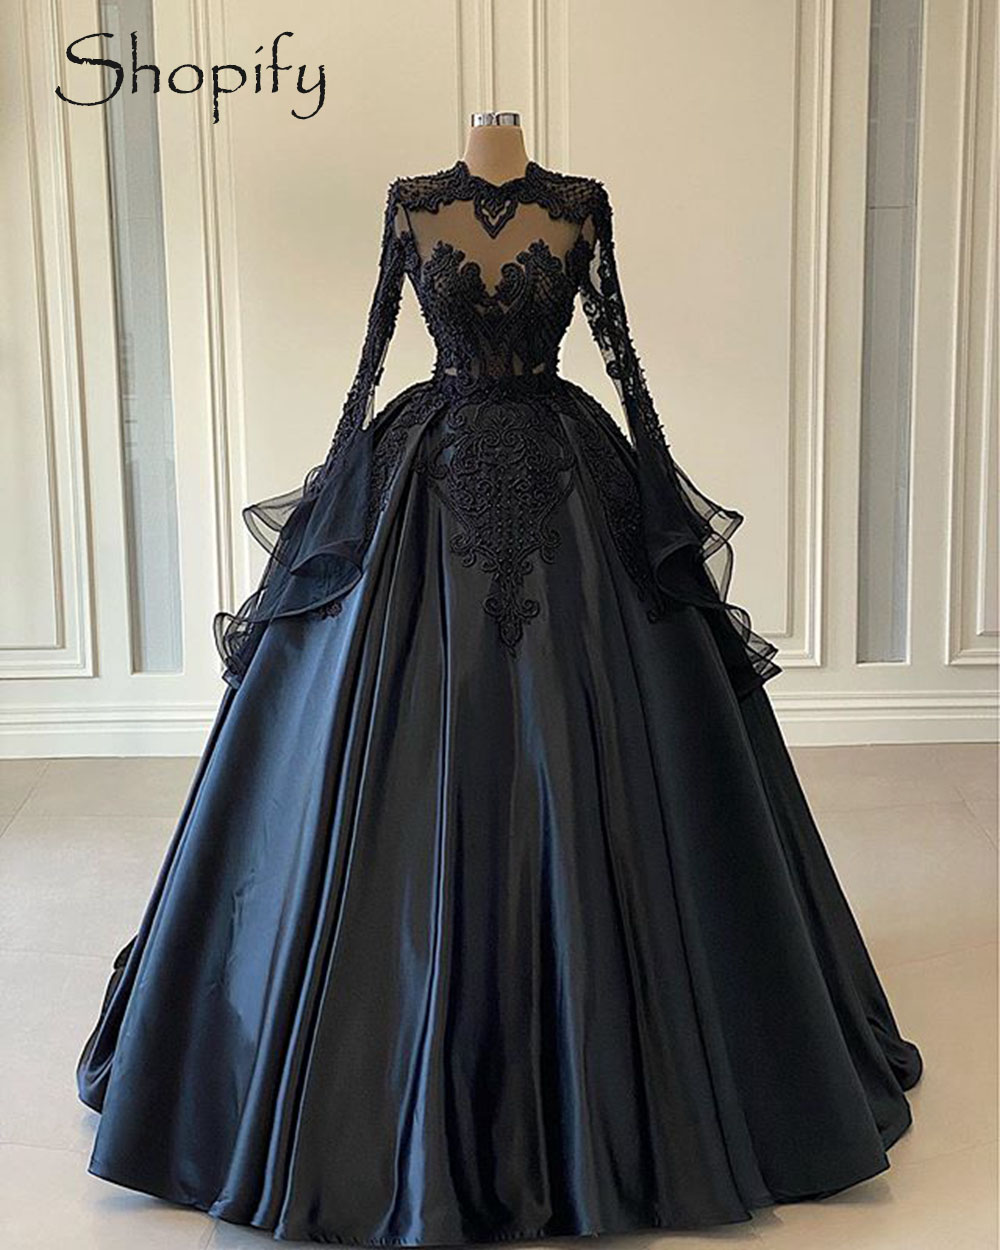 Puffy Ball Gown Long Sleeve Women Evening Dress 2020 Beaded Sheer Lace Black Twill Satin Dubai Style Formal Gowns Leather Bag